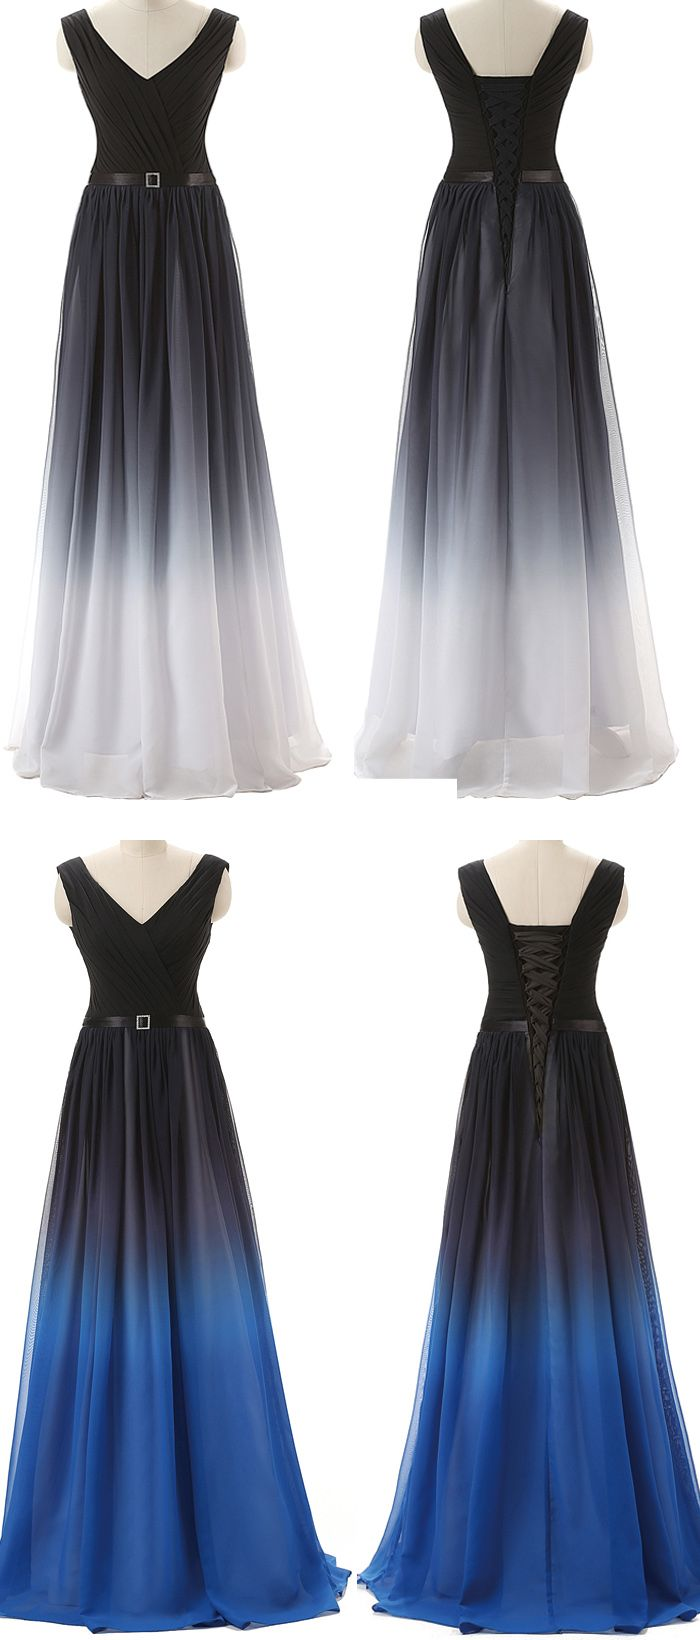 Black navy blue ombre prom dresses with v neck long evening dress